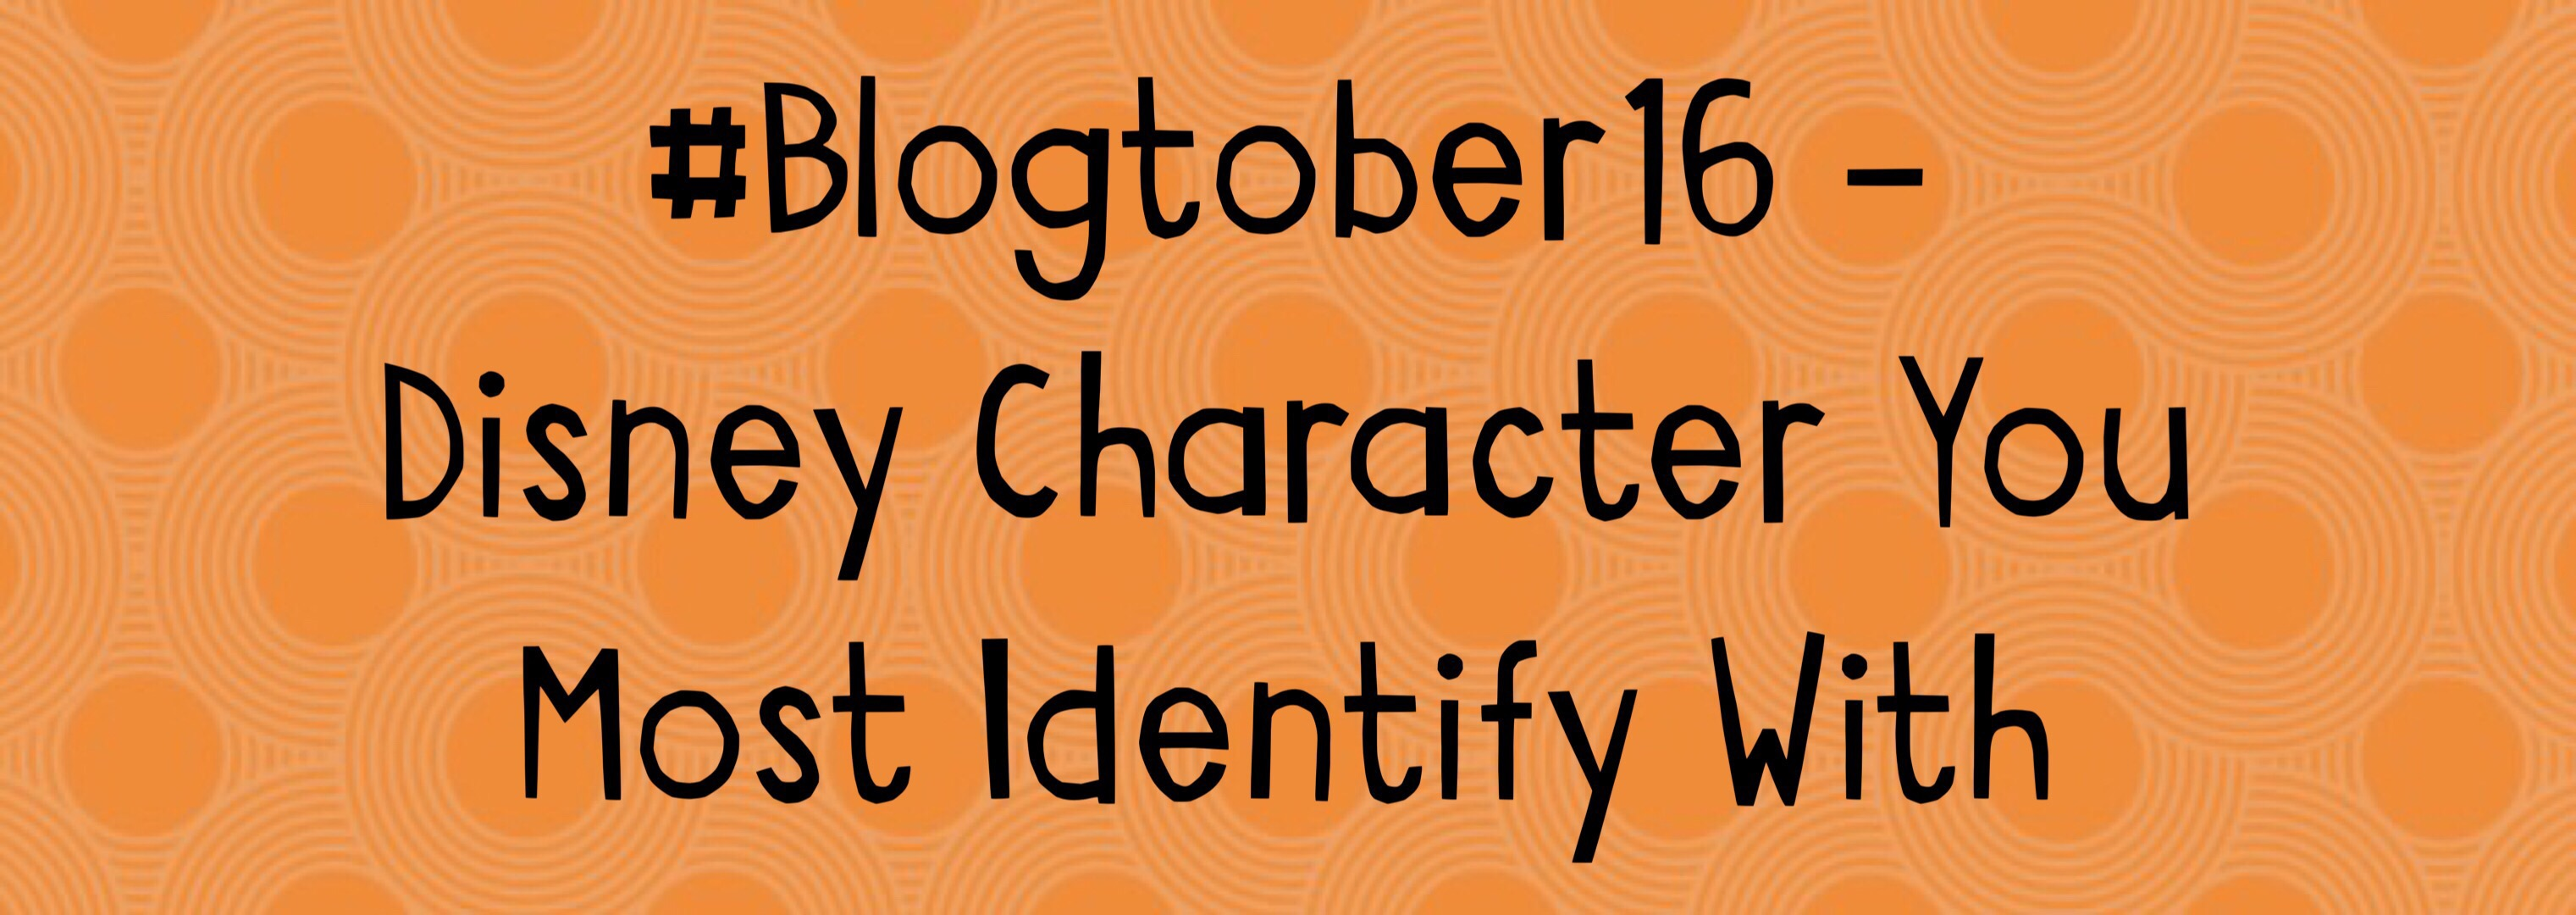 Disney Character You Identify With – #Blogtober16 Day 24